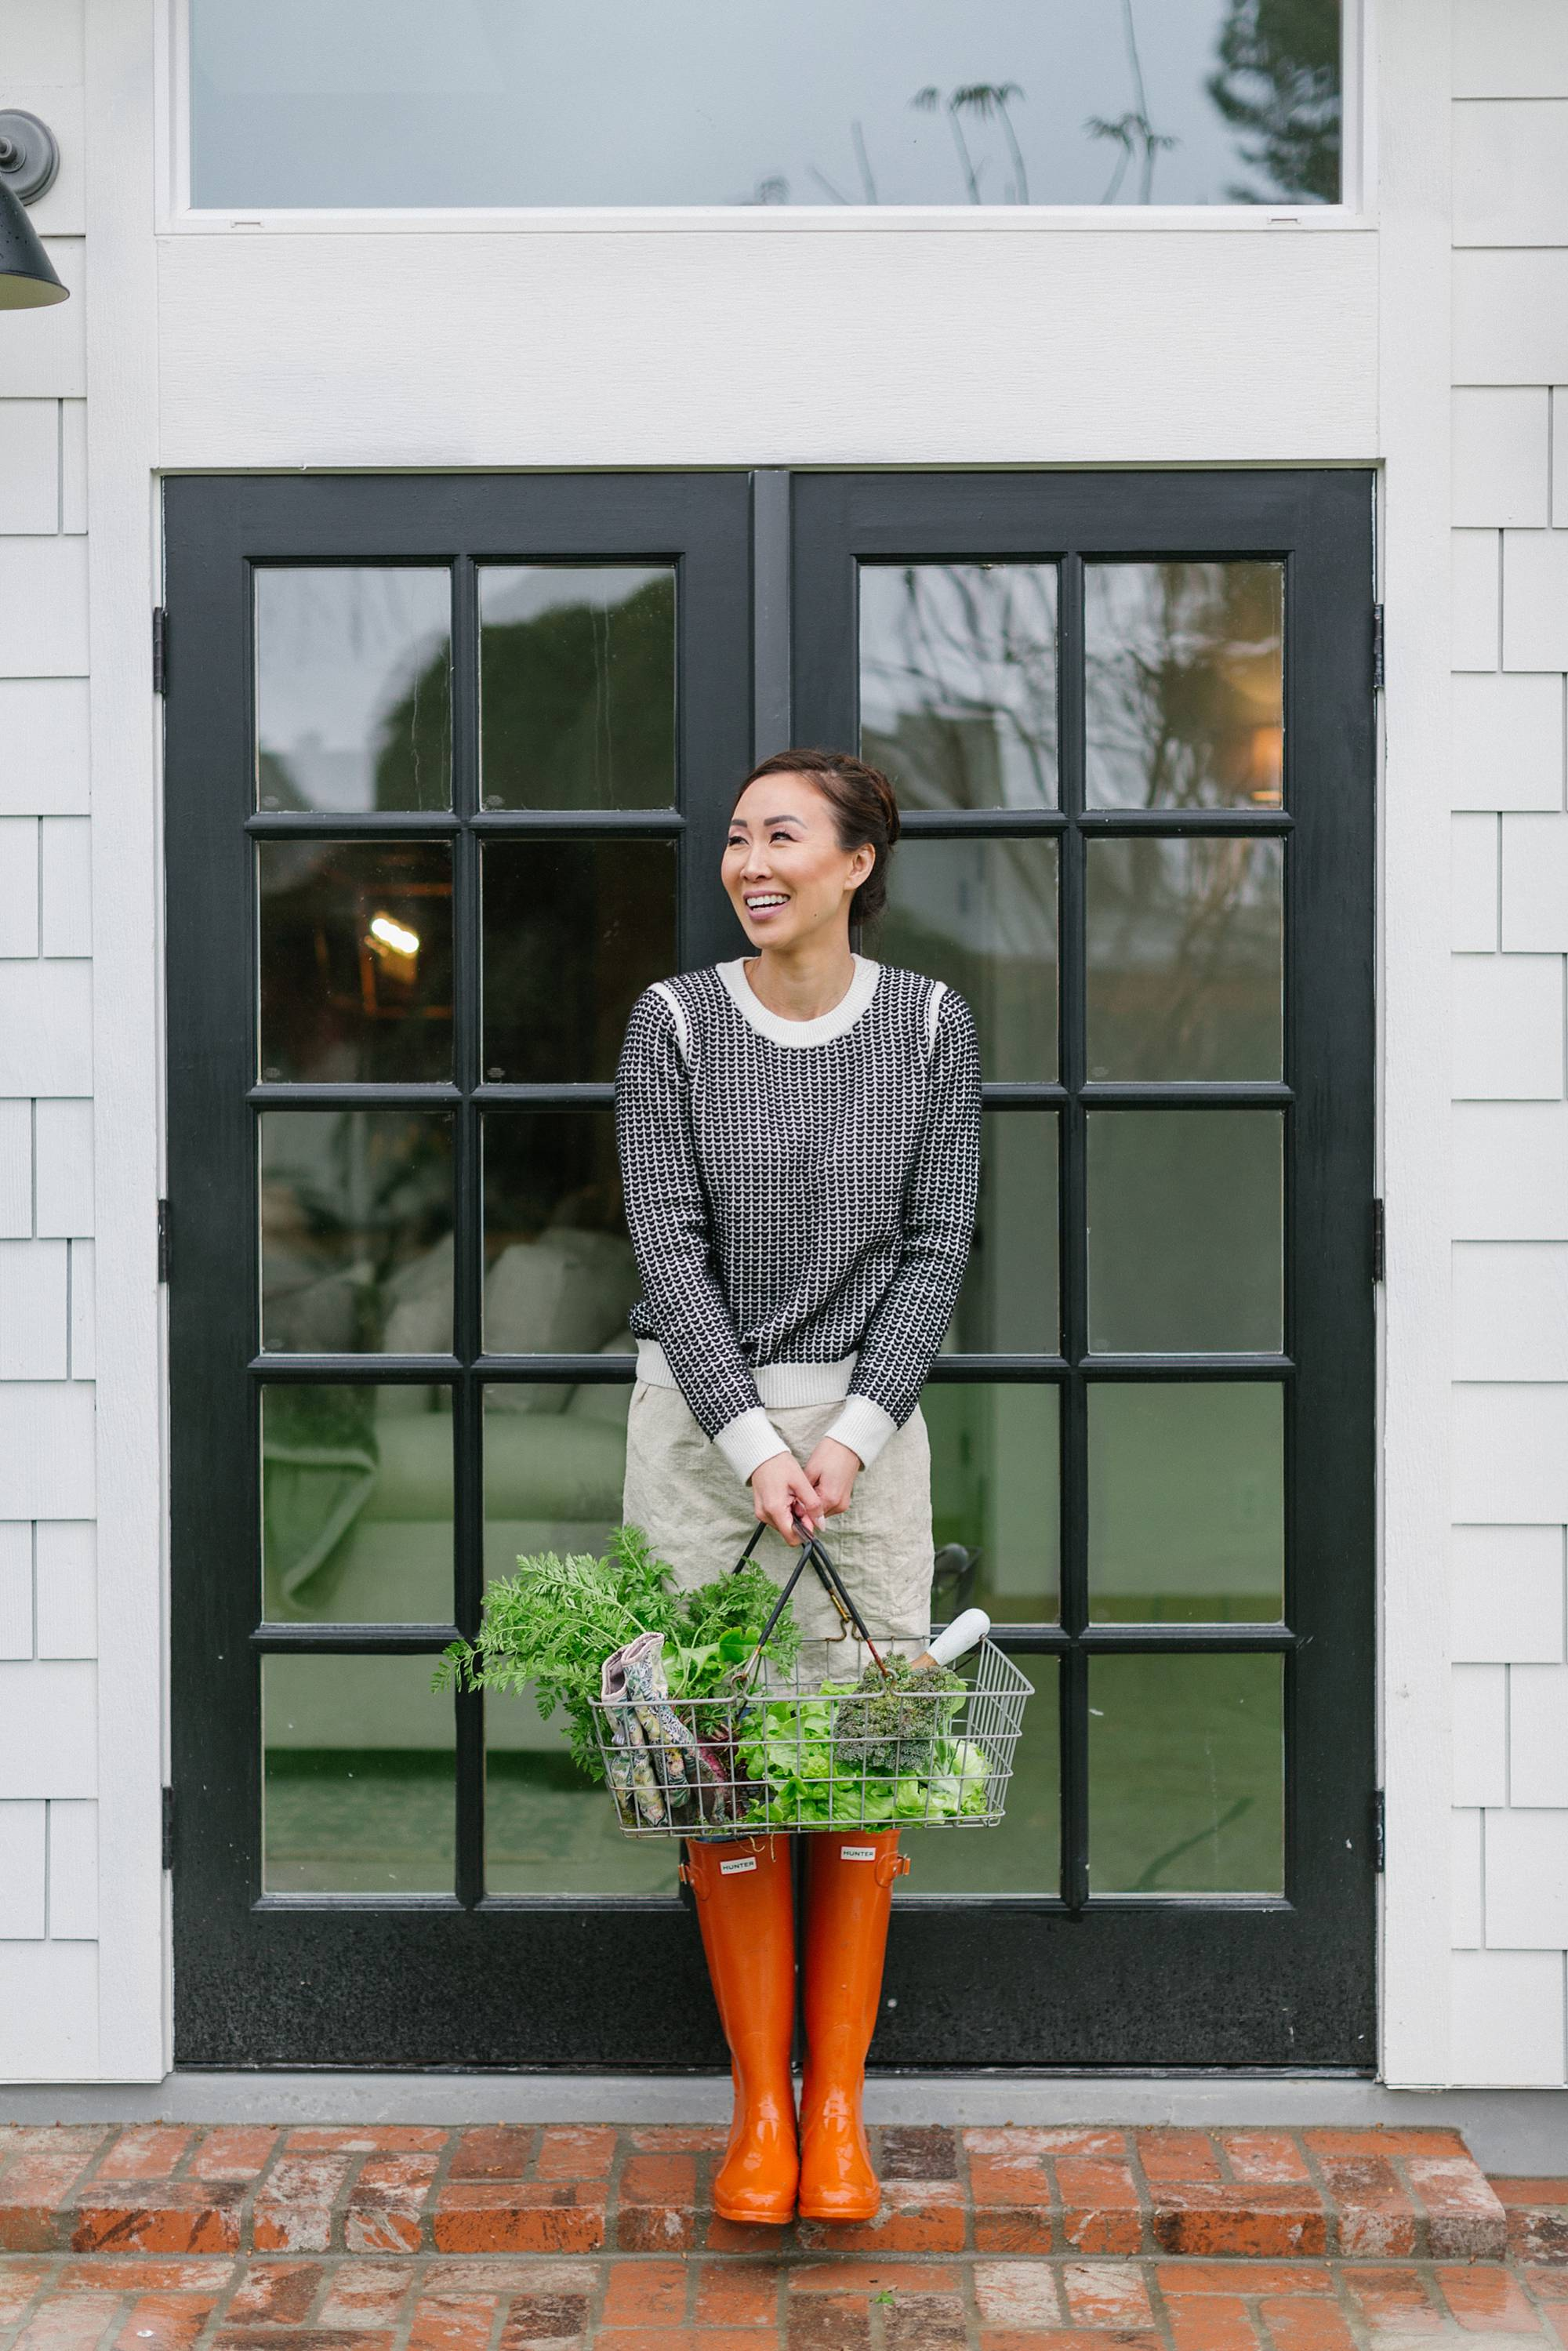 garden blog into the garden wet winter day with lifestyle blogger Diana Elizabeth holding garden veggie basket #garden #raisedgarenbeds #gardener